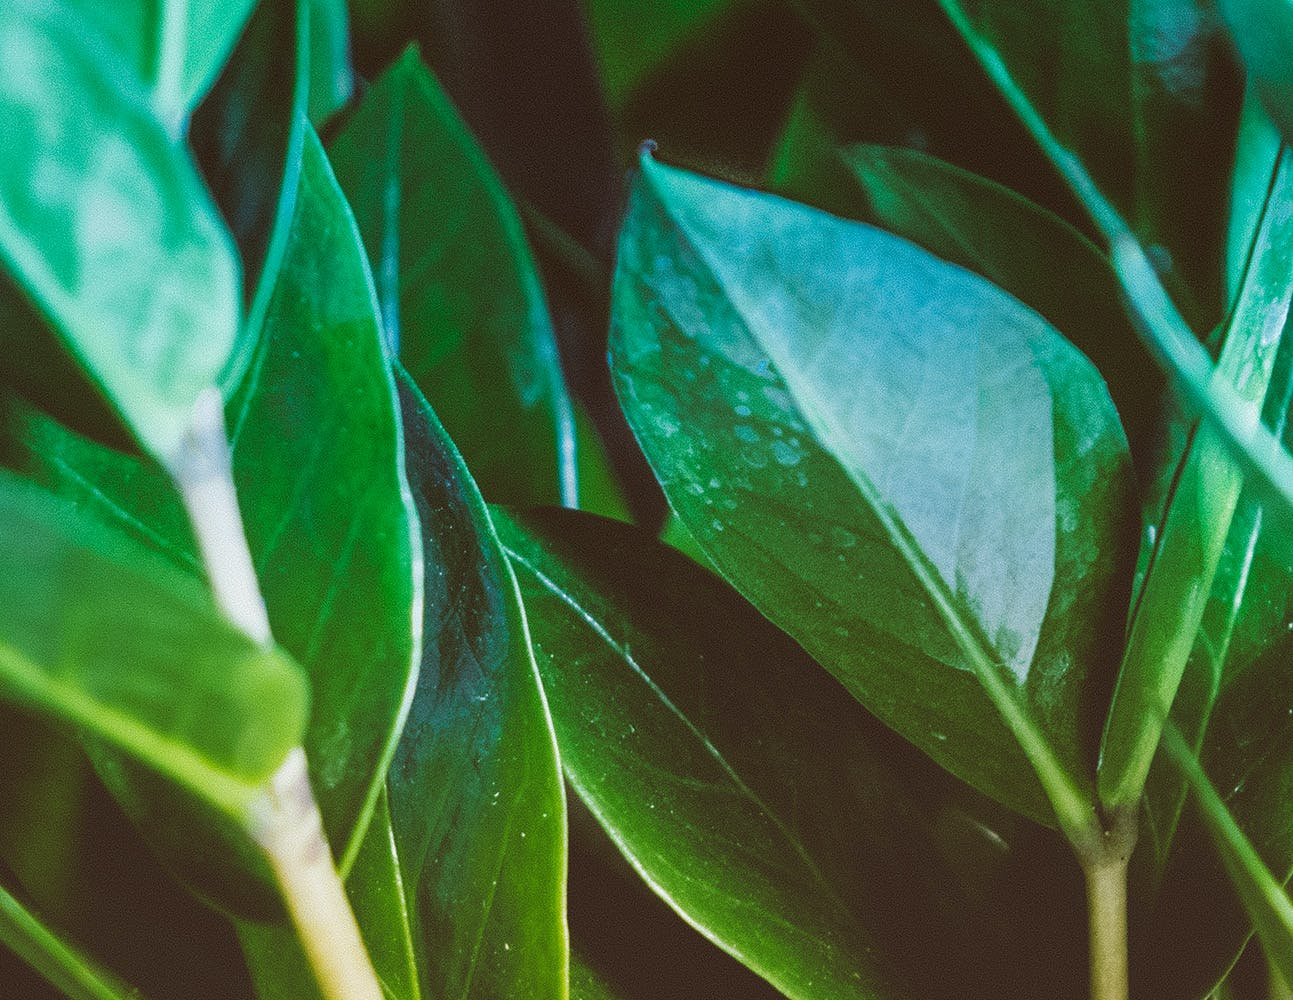 Green Ovate Leaf Plant in Close Up Photography